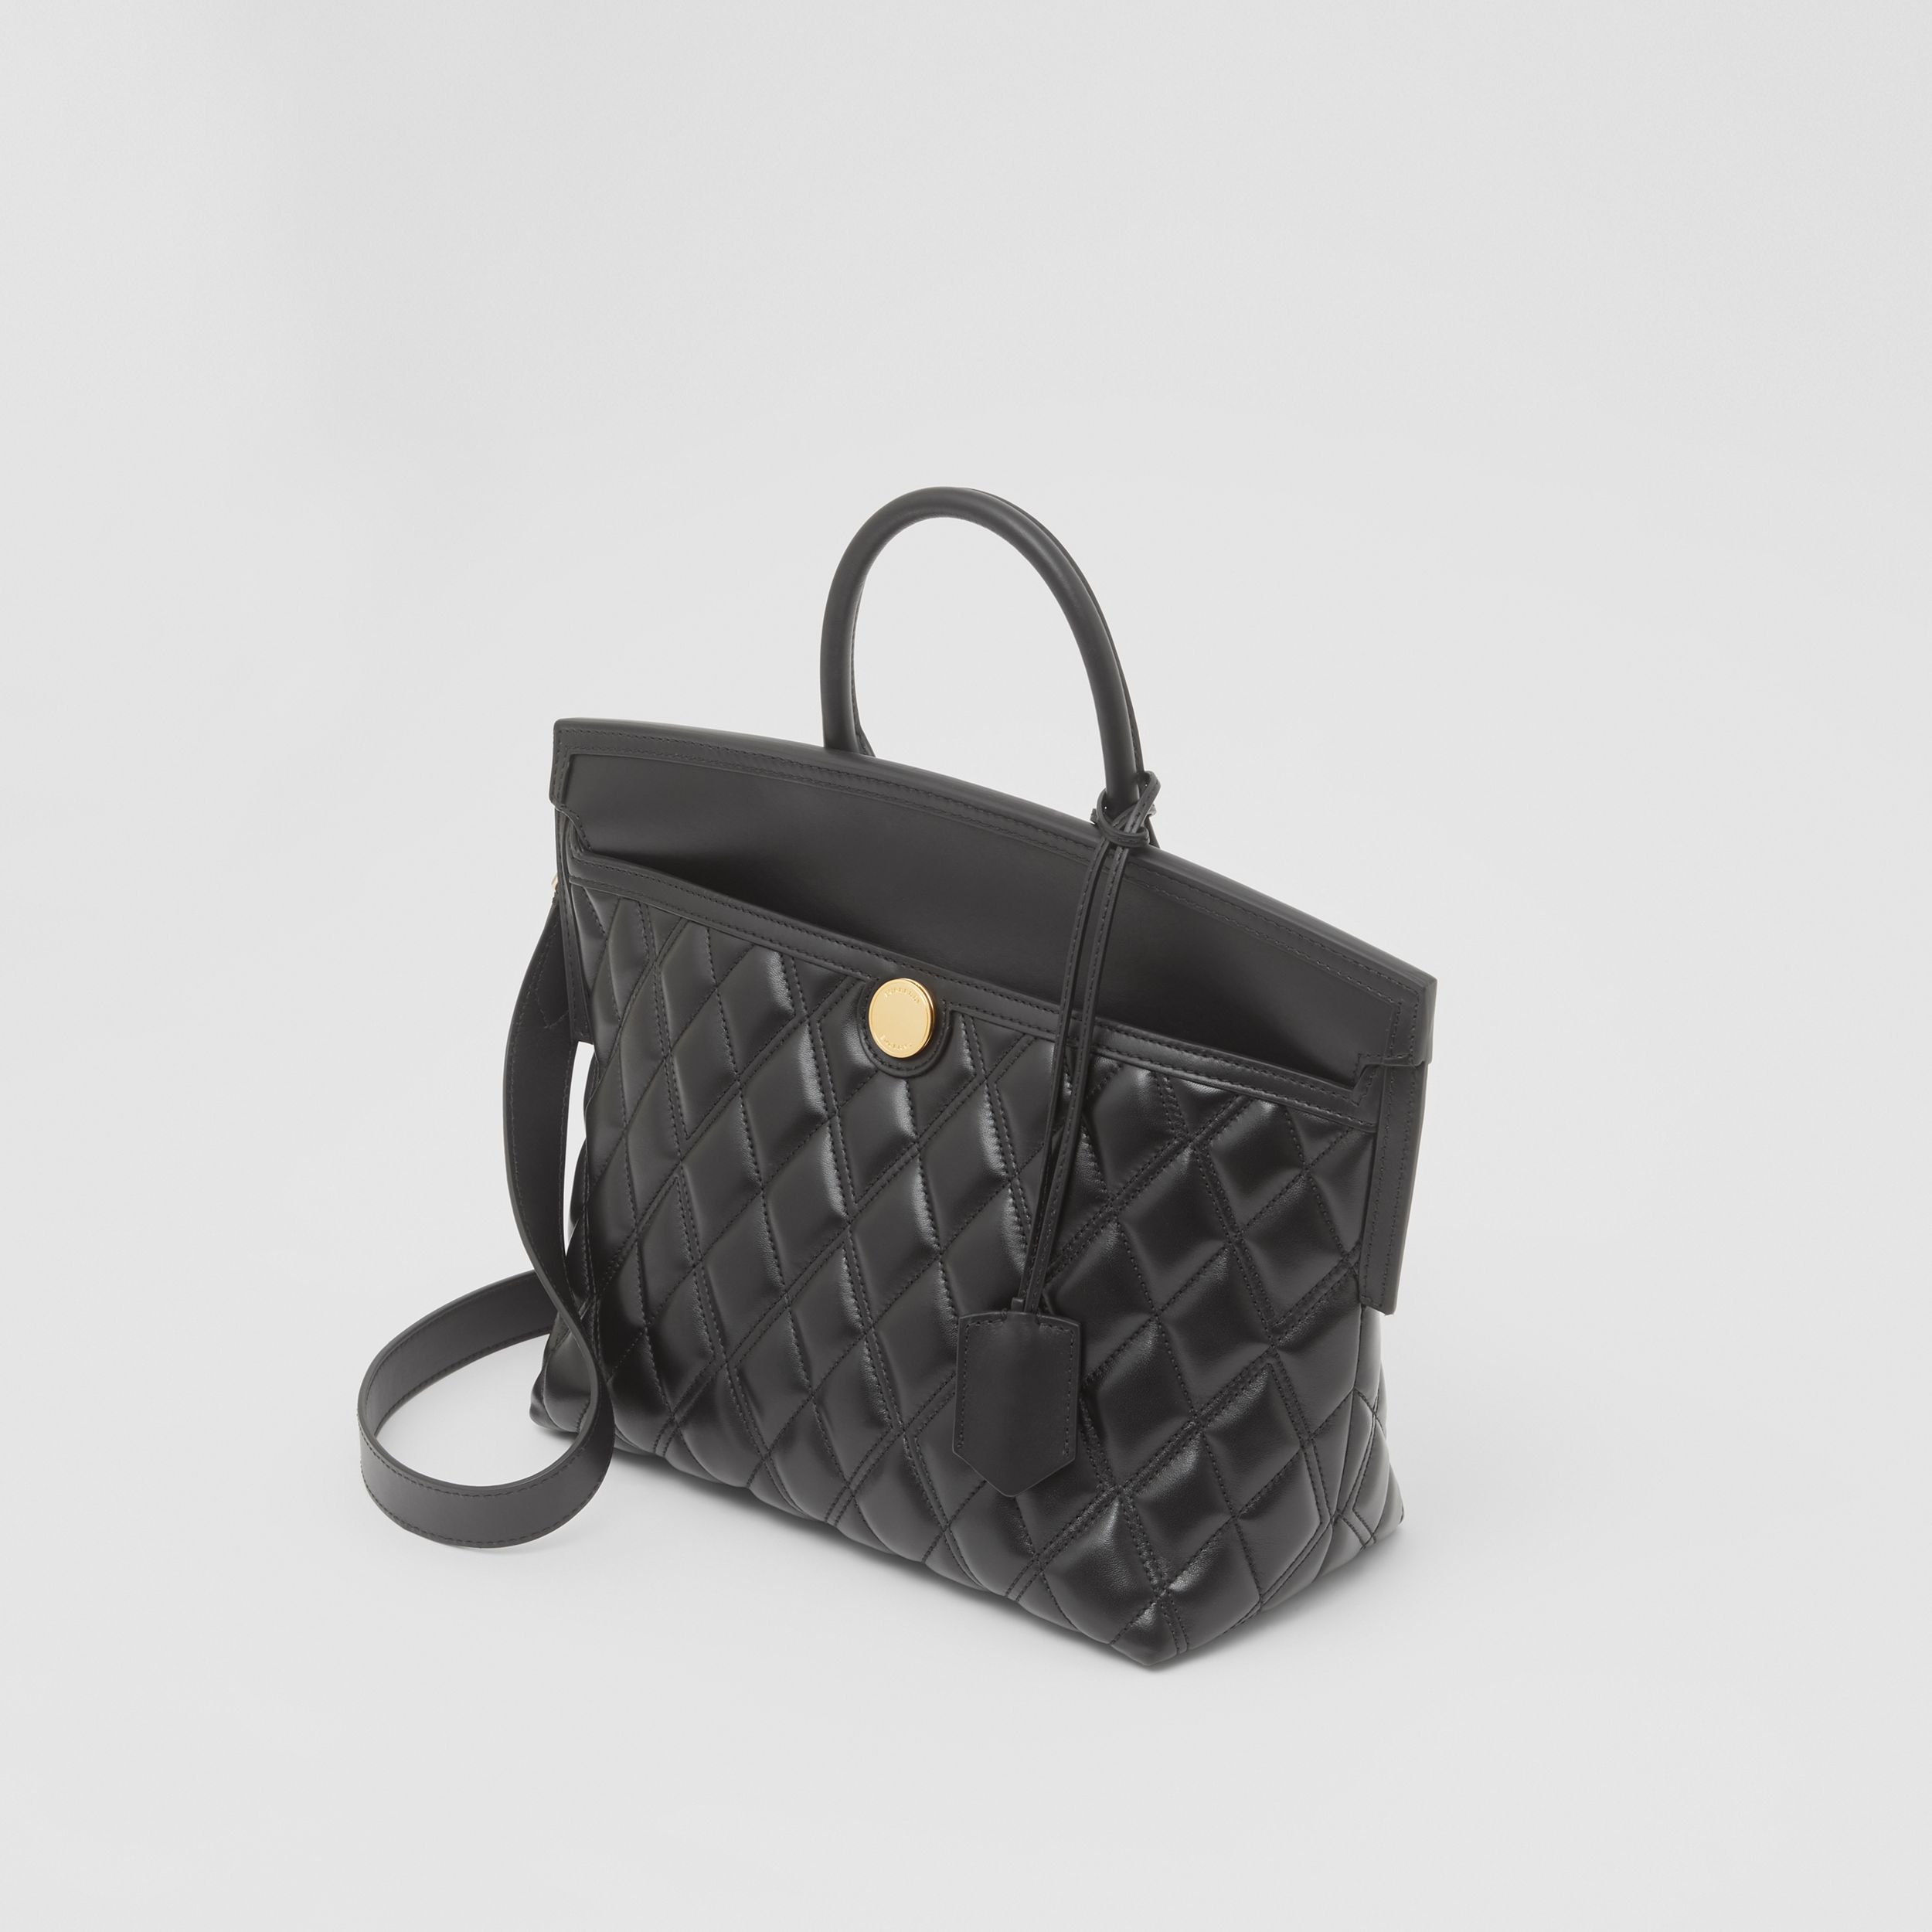 Small Quilted Lambskin Society Top Handle Bag in Black - Women | Burberry - 3